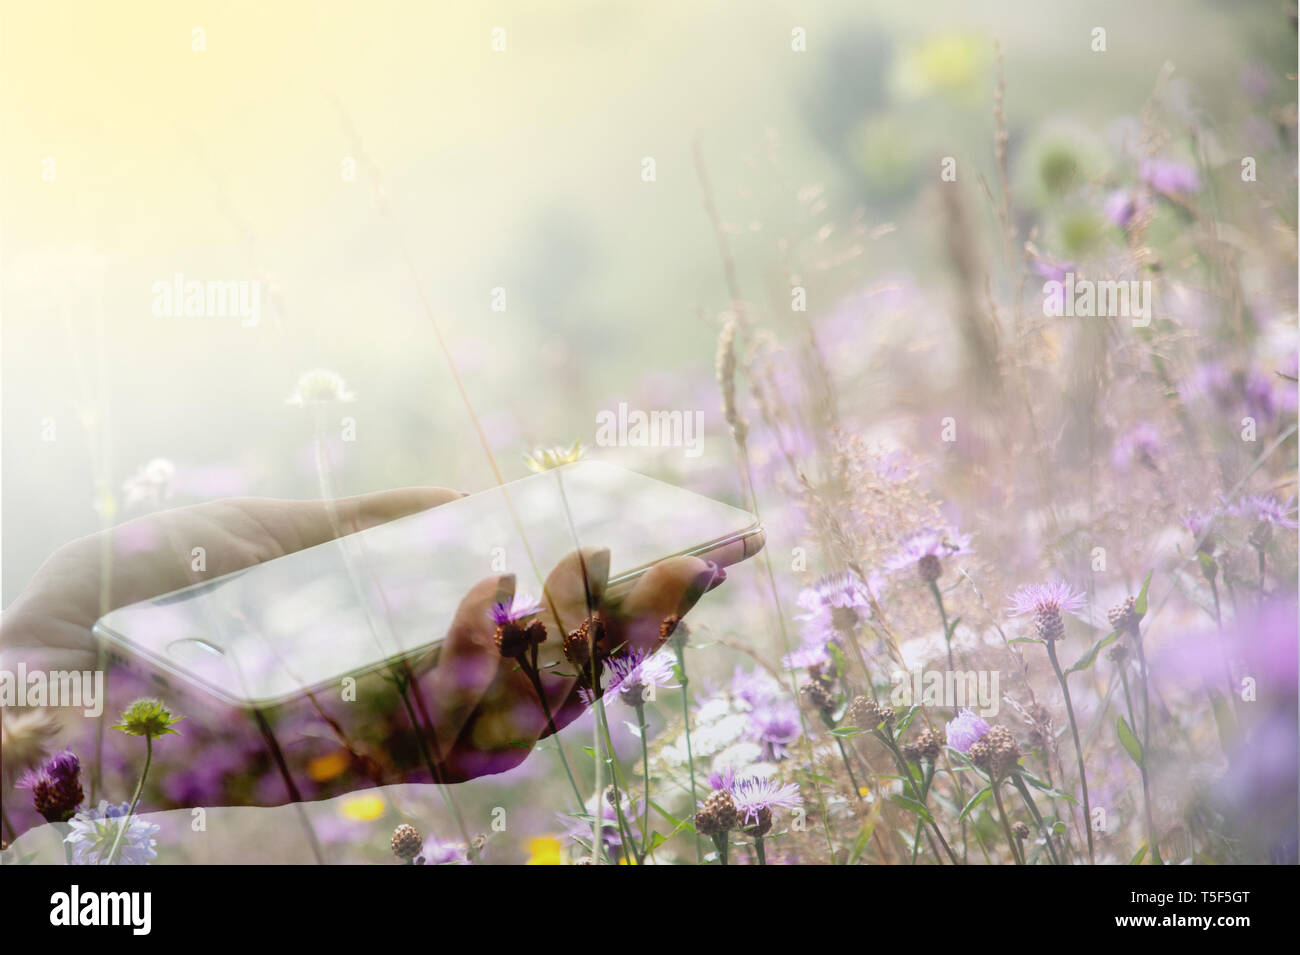 Female hand holding a smartphone against the background of a blooming meadow. Double exposure Stock Photo